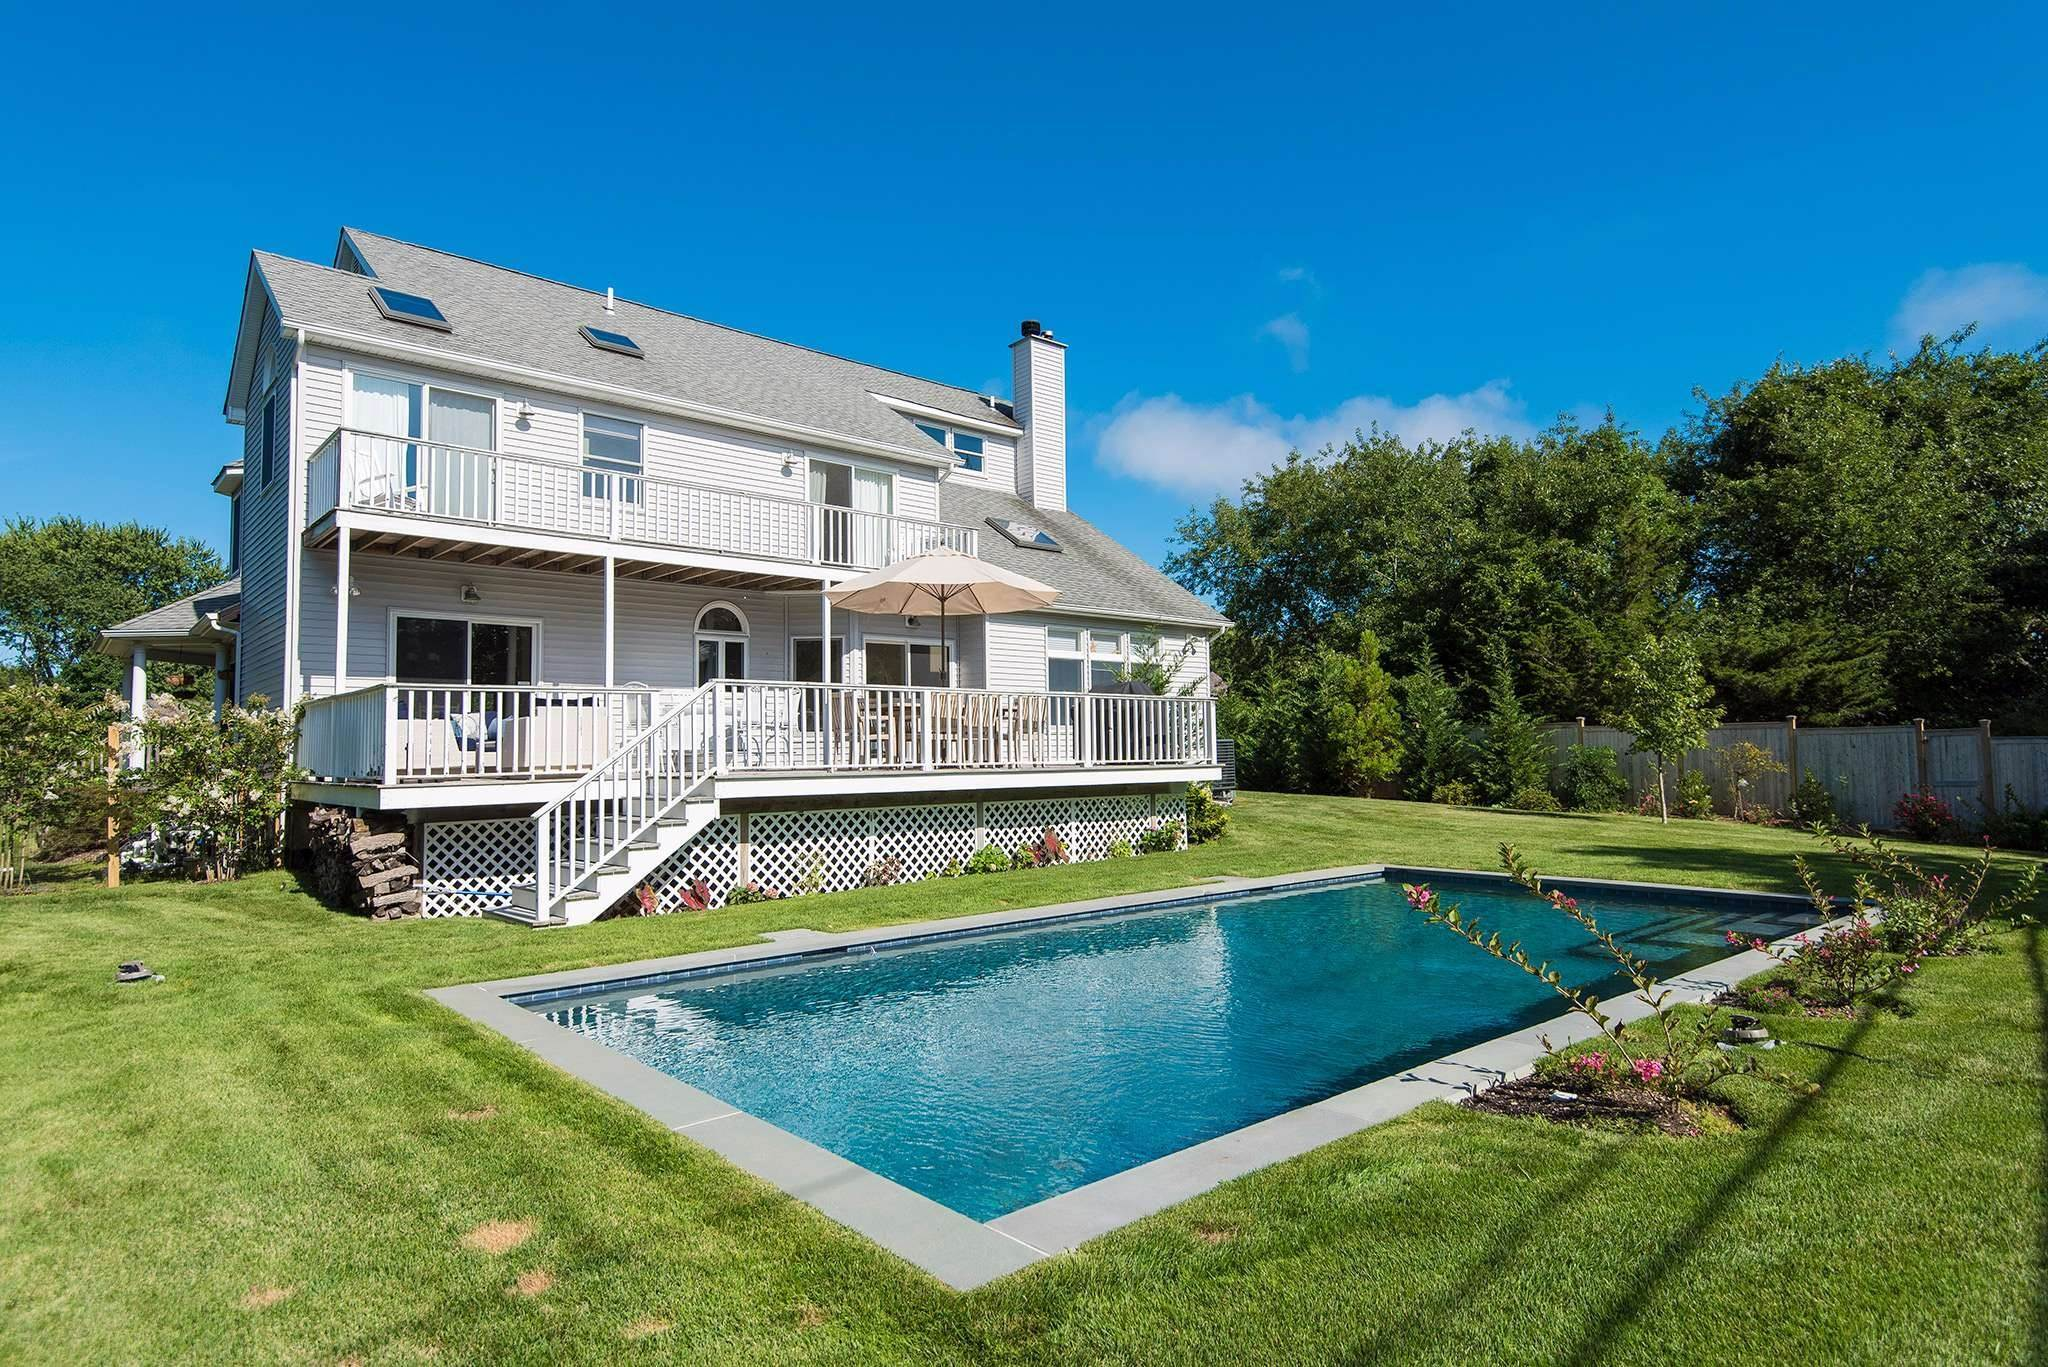 Single Family Homes at Immaculate Shelter Island Contemporary With Pool And Beach Shelter Island Heights, Shelter Island, NY 11964